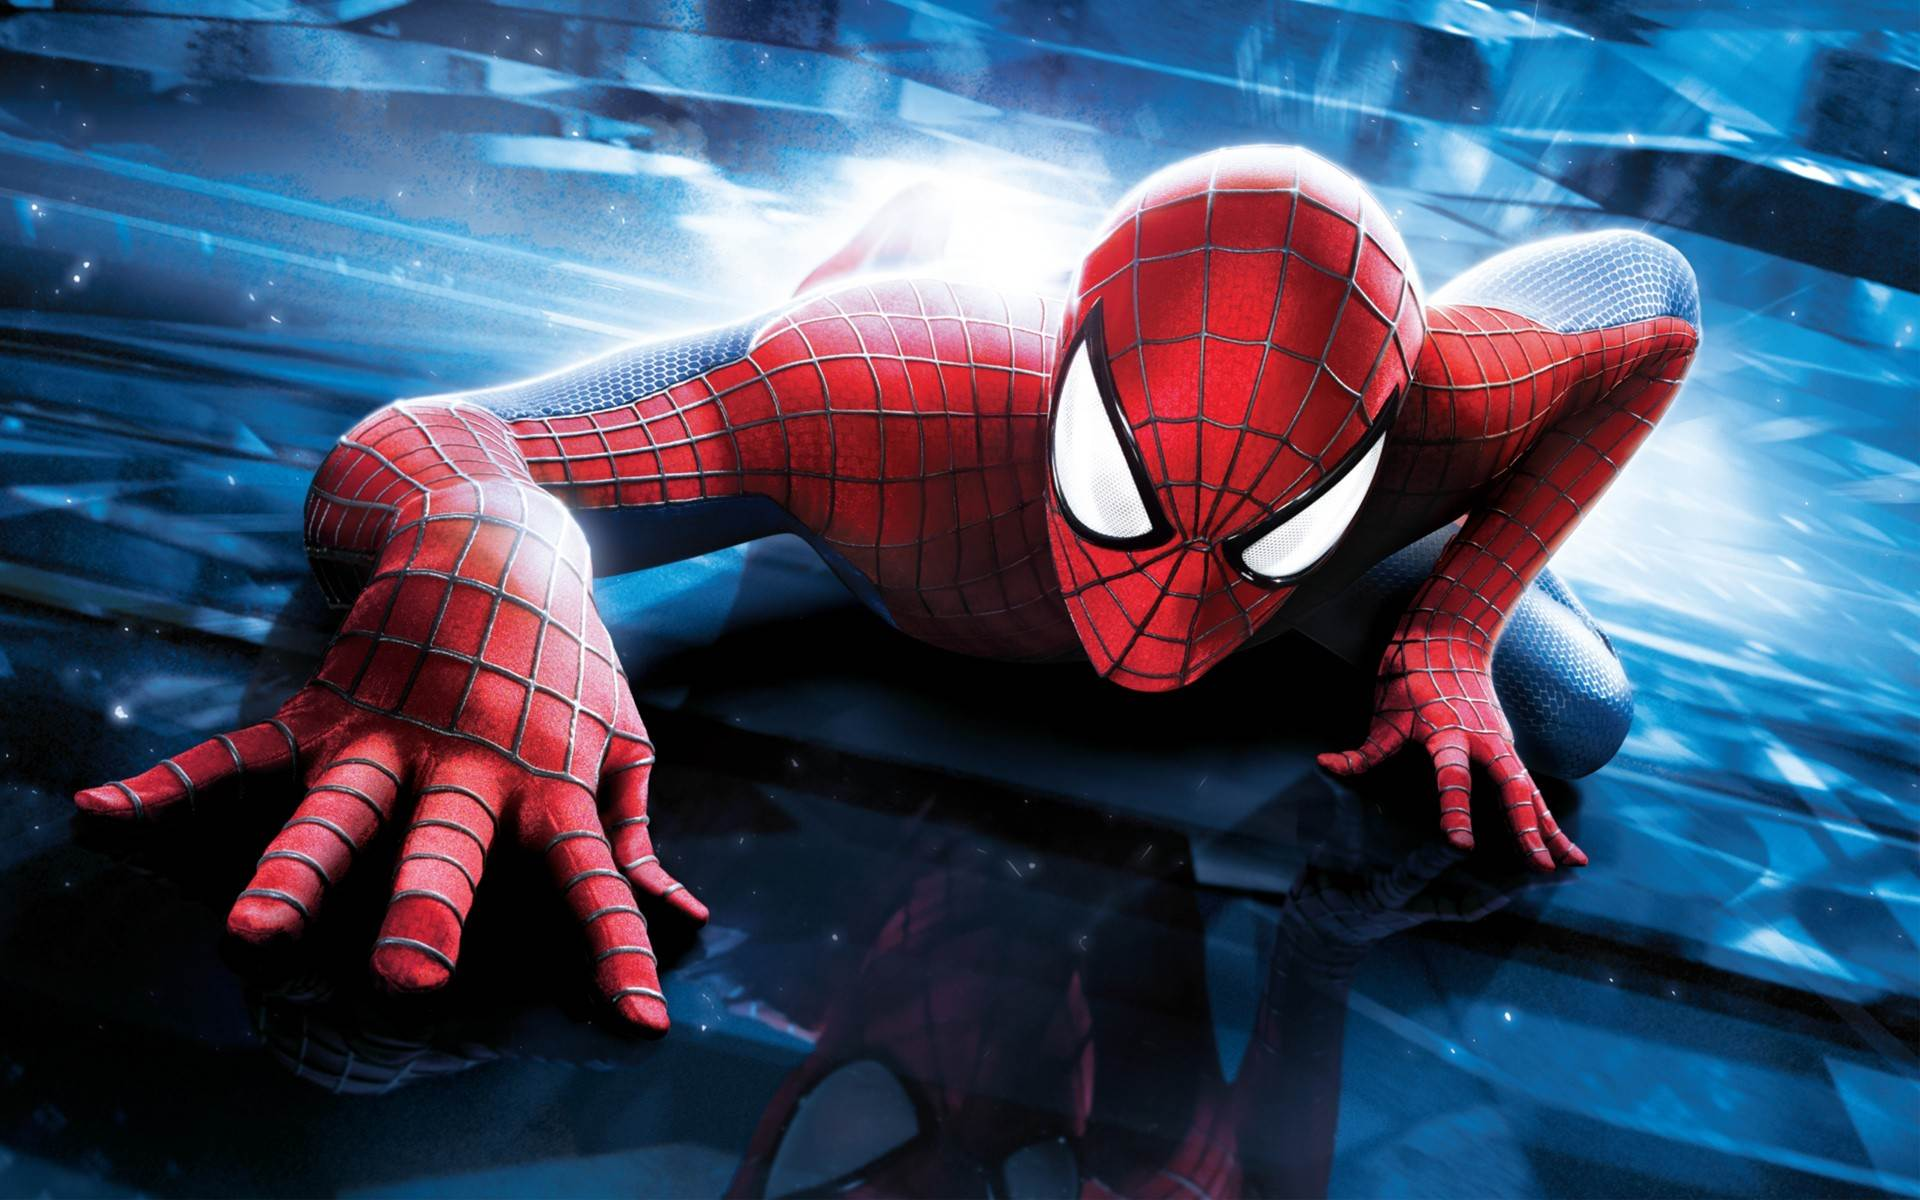 Spiderman Wallpaper Download Hd 1920x1200